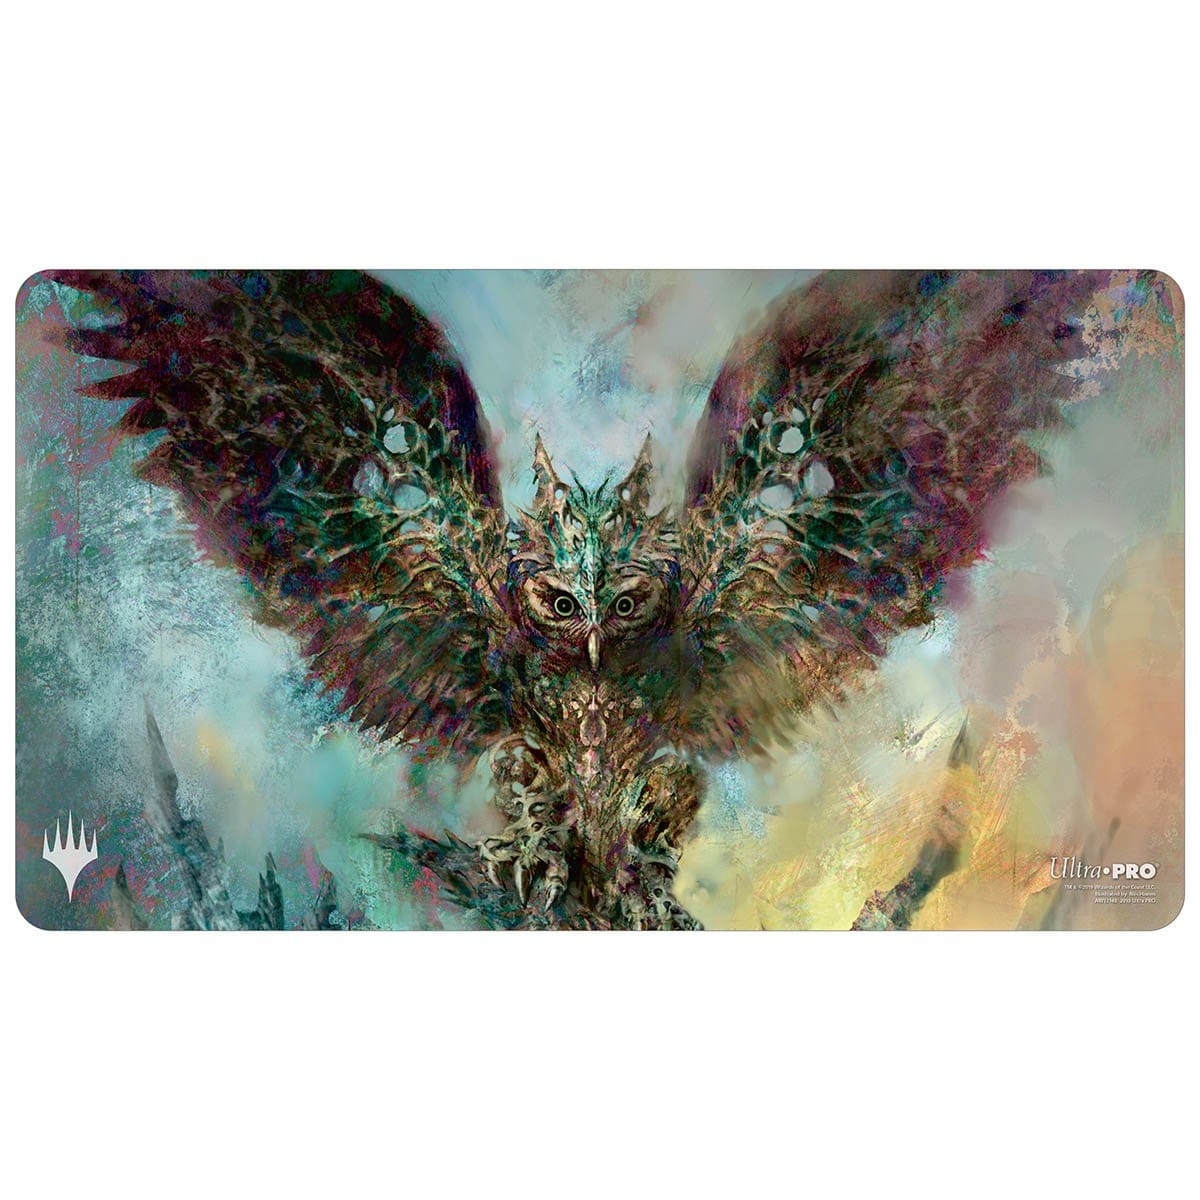 Baleful Strix Playmat